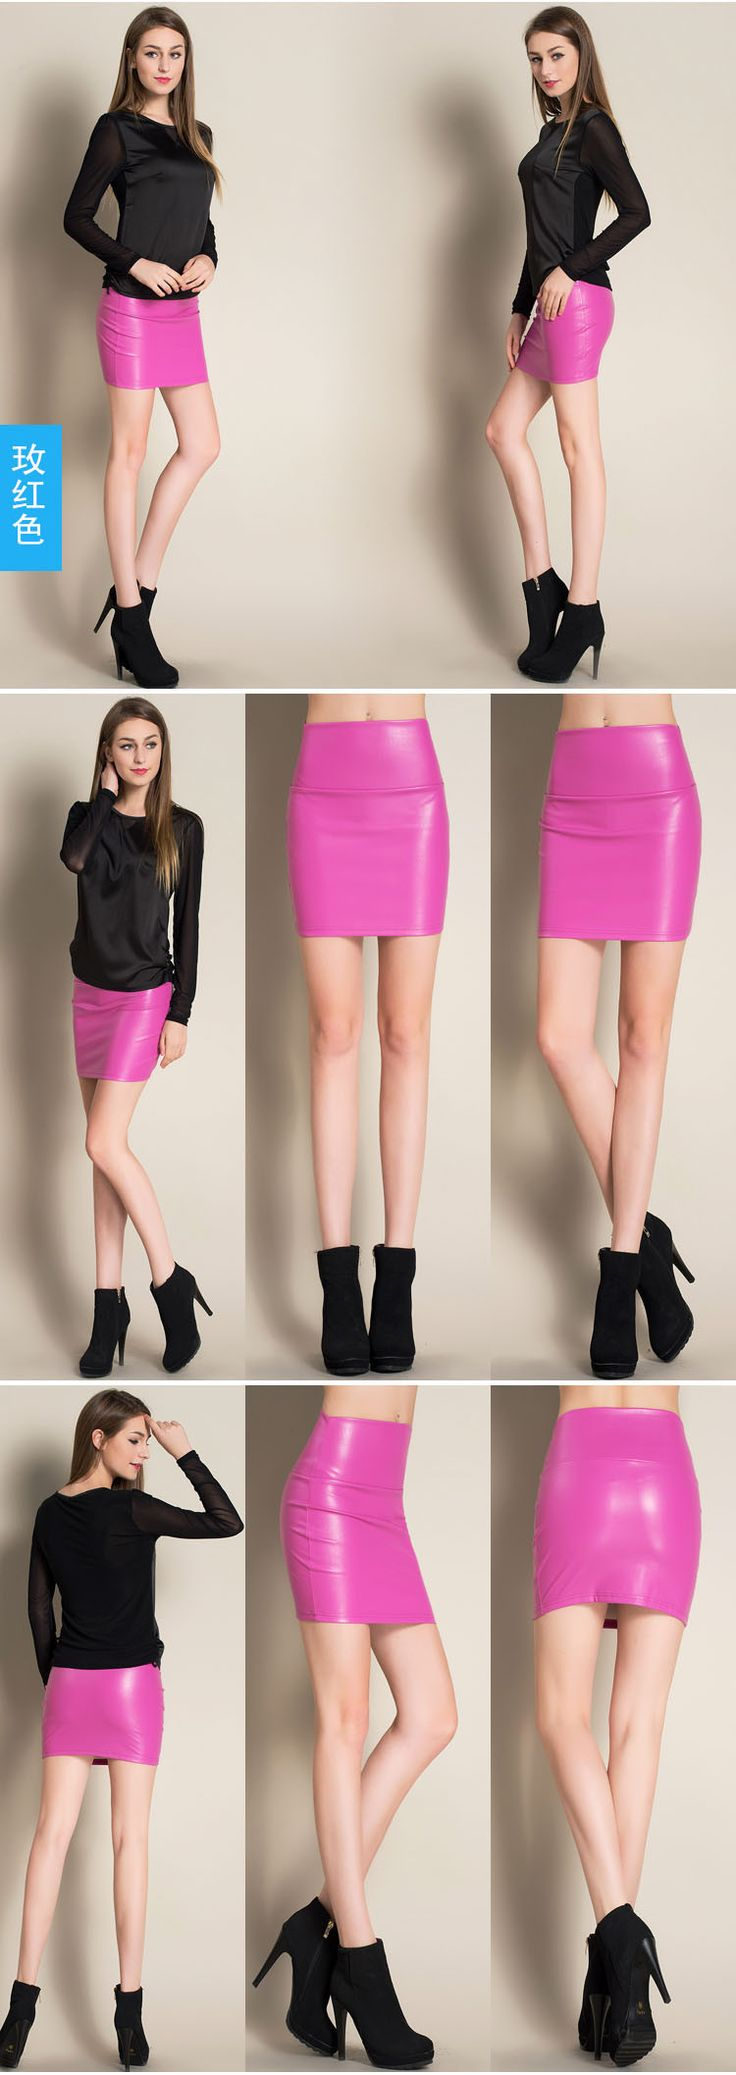 2017 New fashion Women faux pu Leather skirt high waist party clothing female short pencil woman skirts saias femininas - free shipping worldwide